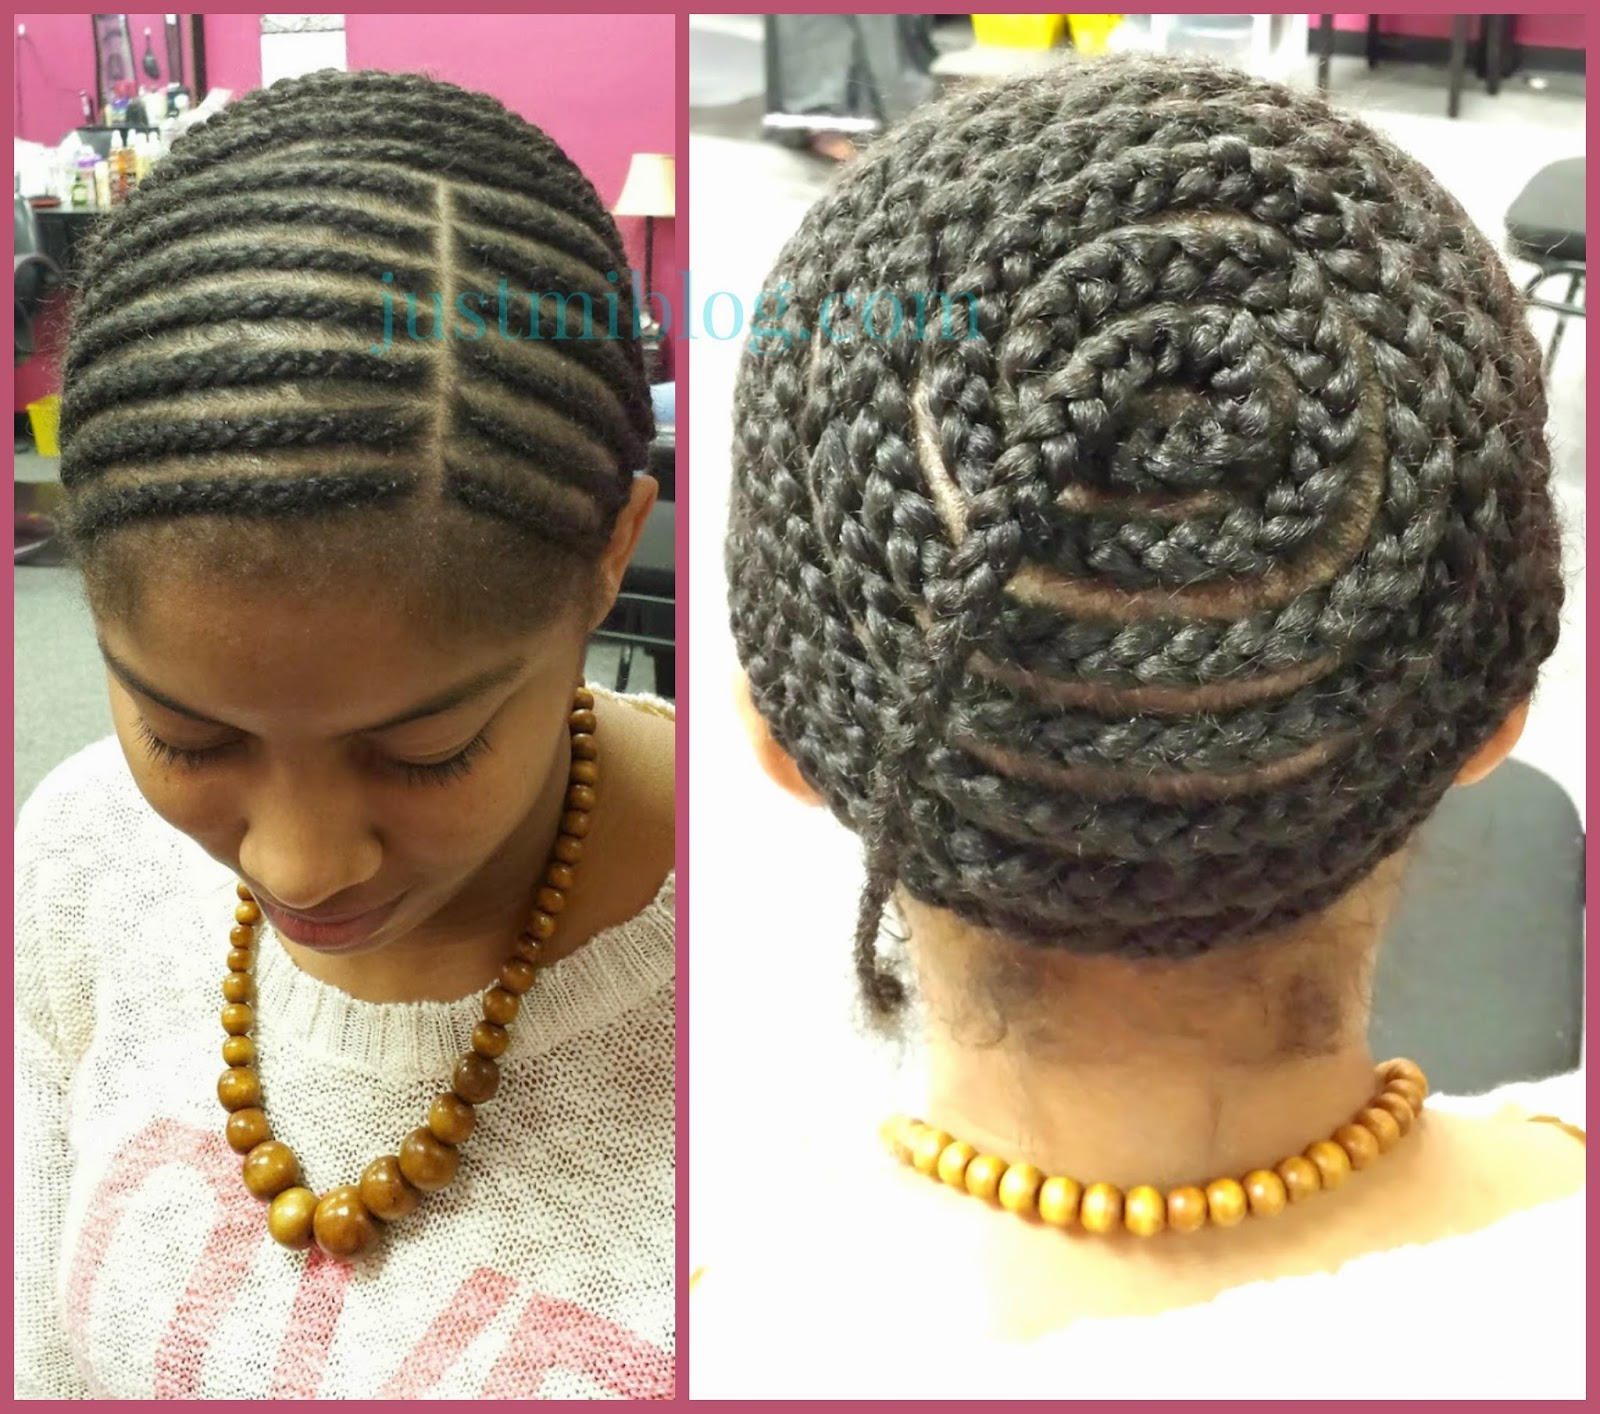 crochet braid patterns to try out | lace frontier lace frontier